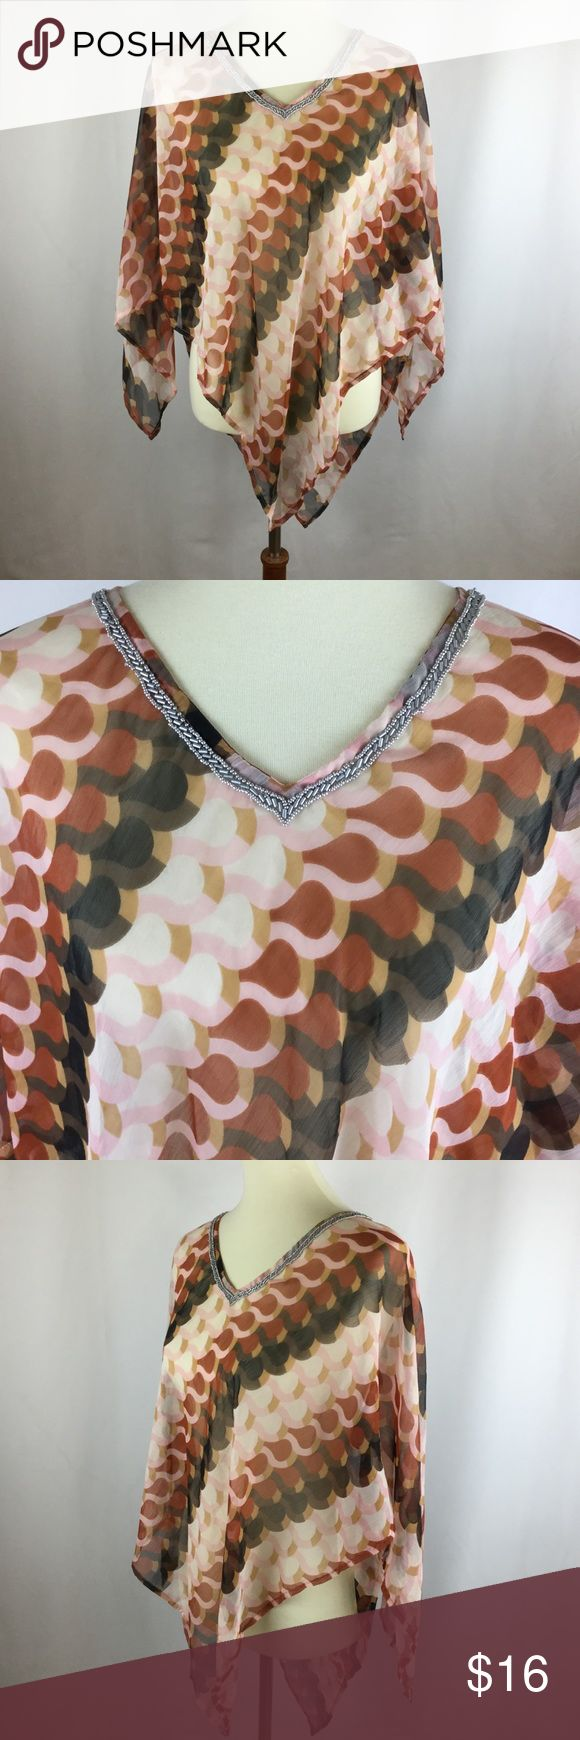 """Women's Poncho Boho Hippie Top Sheer Pink One Size This listing is for a pretty, delicate poncho shirt. It is intended to be layered over another top, such as a tank top. It has silver metallic beading on the v-neckline and a pointed asymmetrical pixie hem. The garment has sleeves, similar to a batwing or dolman style. The tag says one size fits all, but we all know that's not true, so here are the measurements:  Bust: 38""""  Length: At its shortest point, 22"""", and at its longest point, 37""""…"""